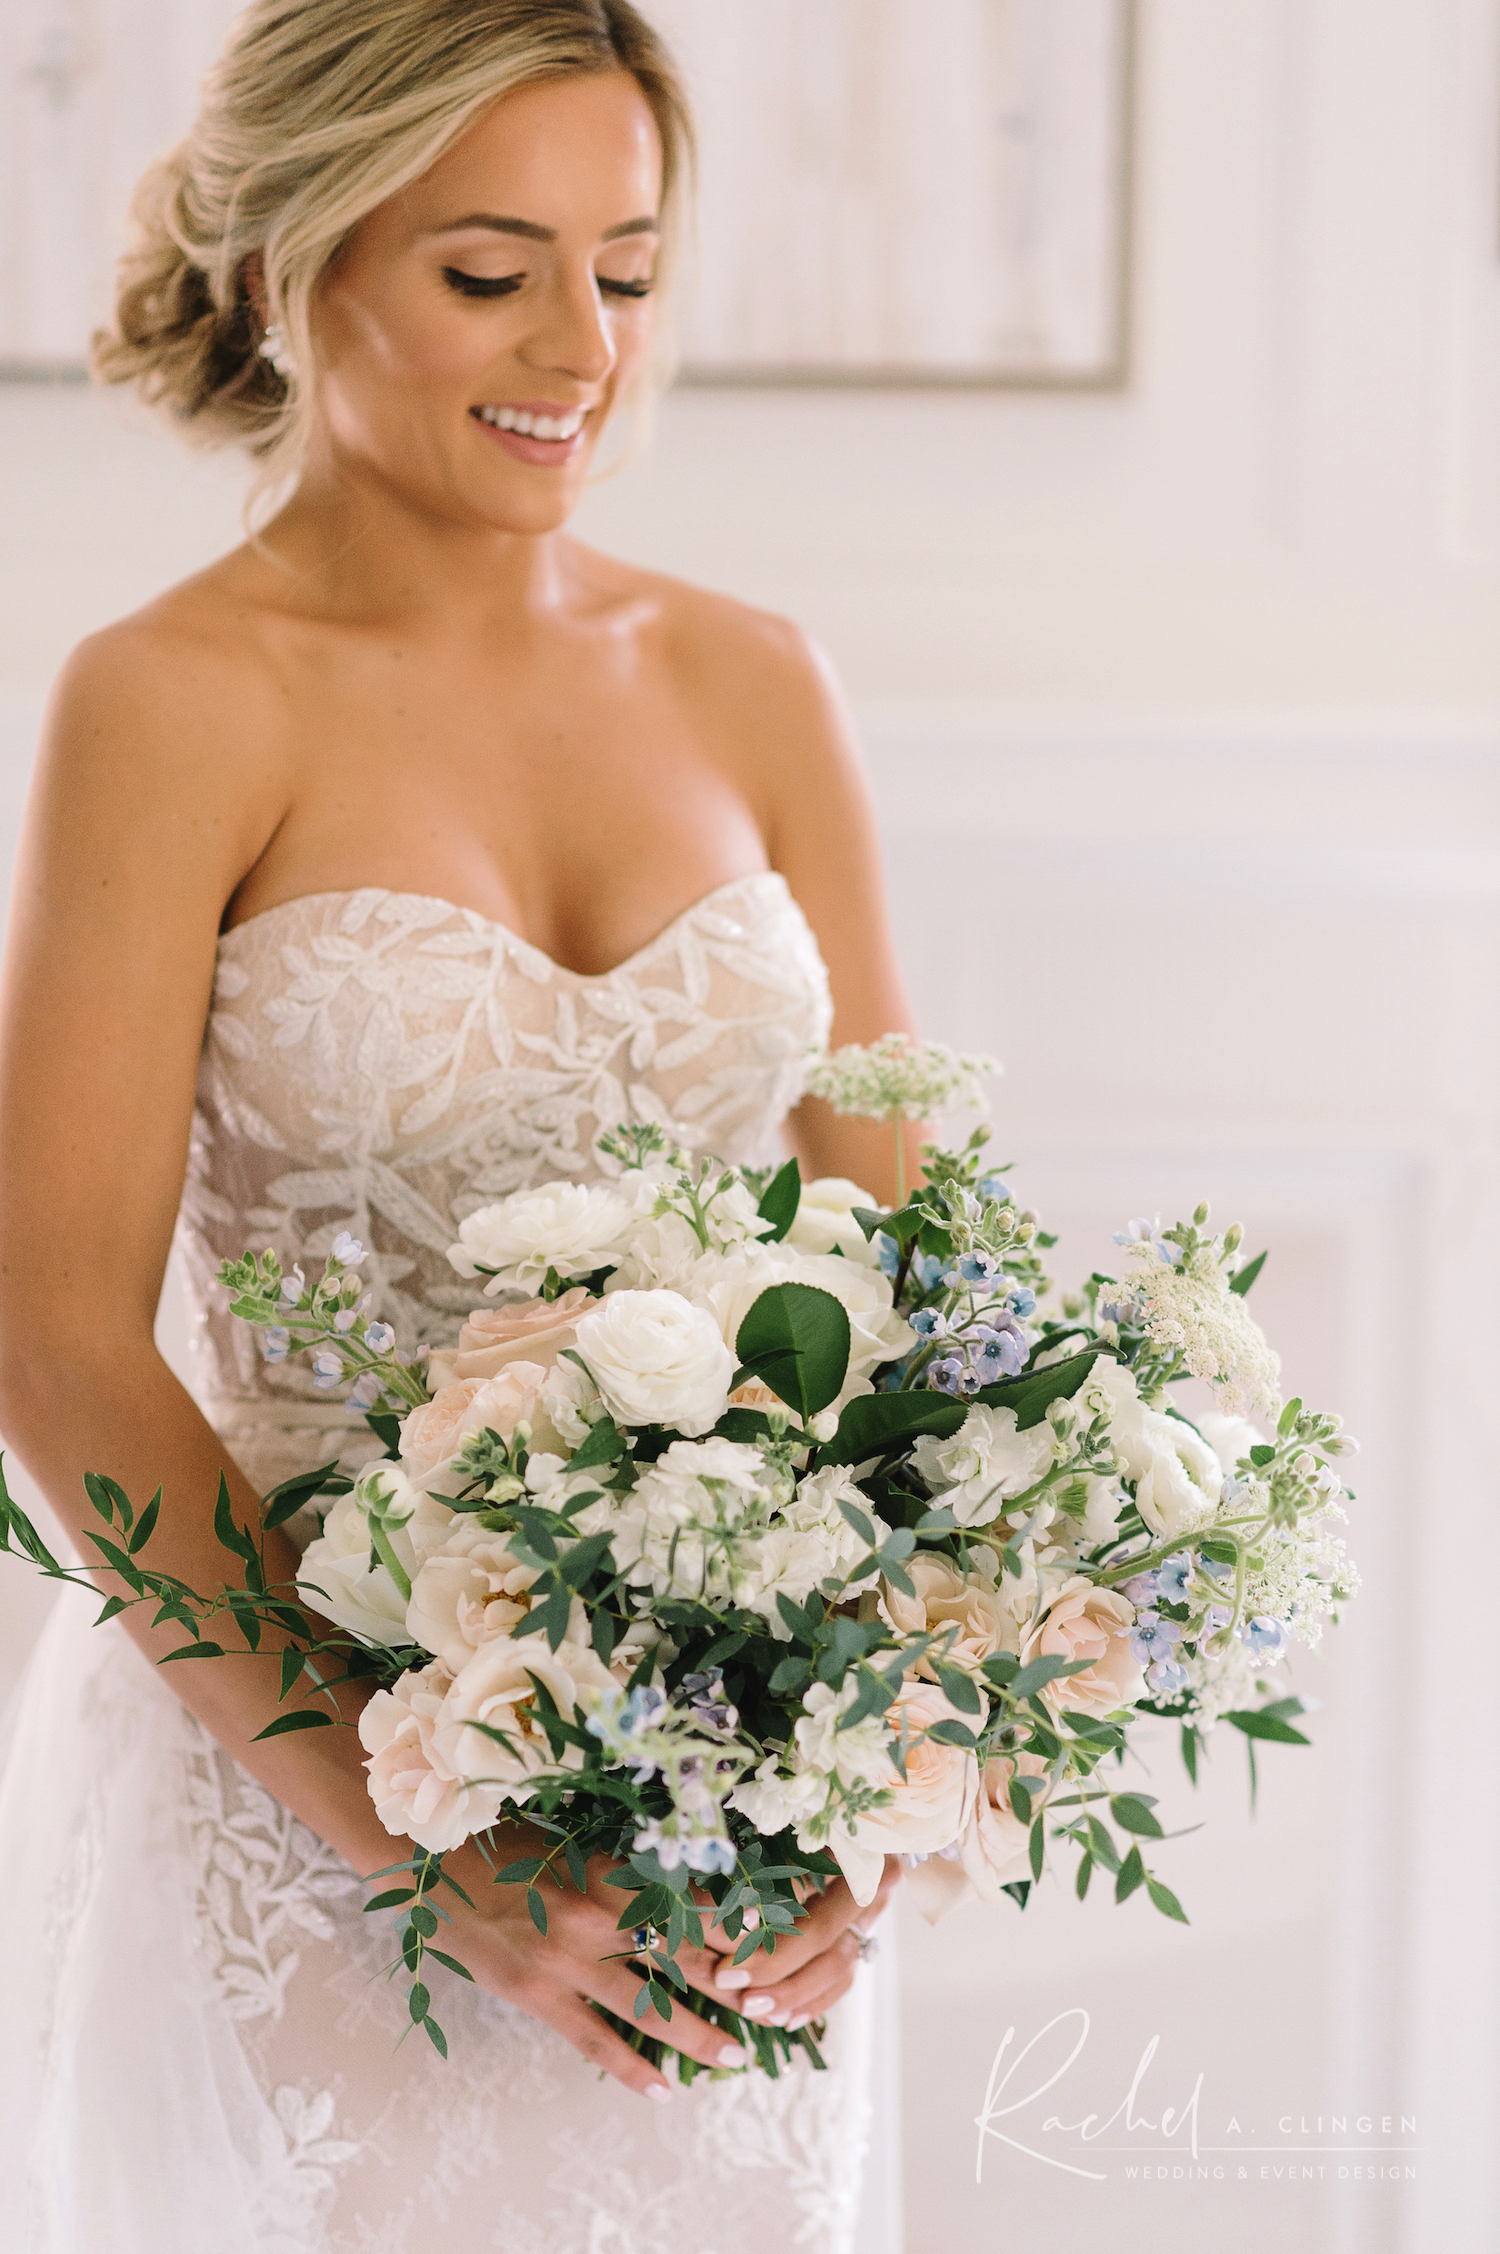 sydney strome wedding flowers toronto